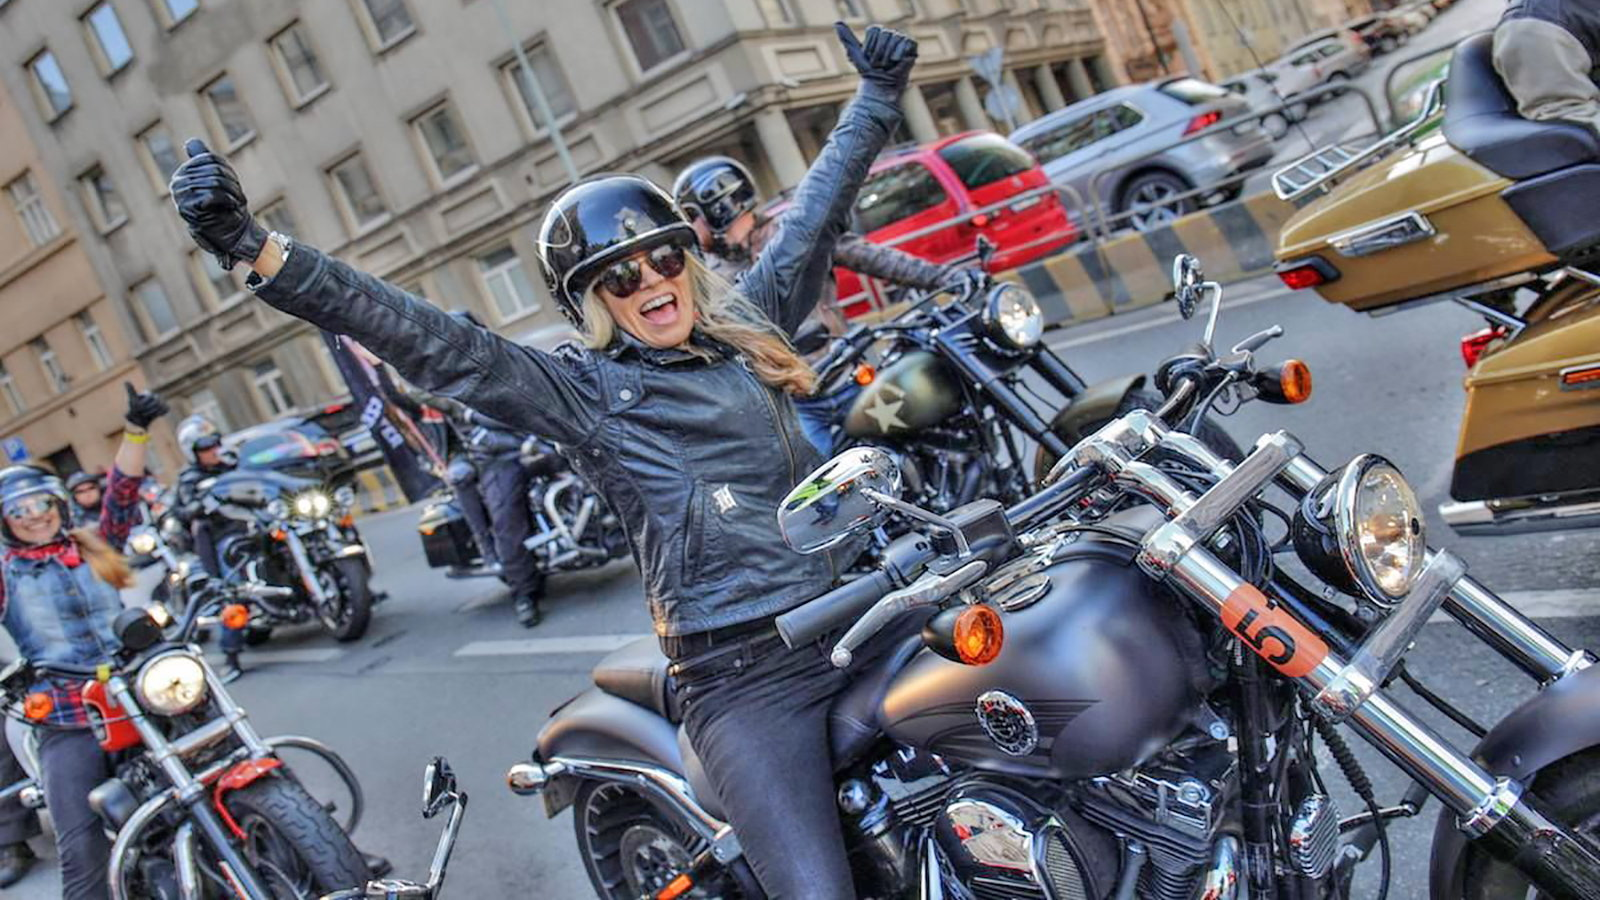 The Rise of Harley in Europe